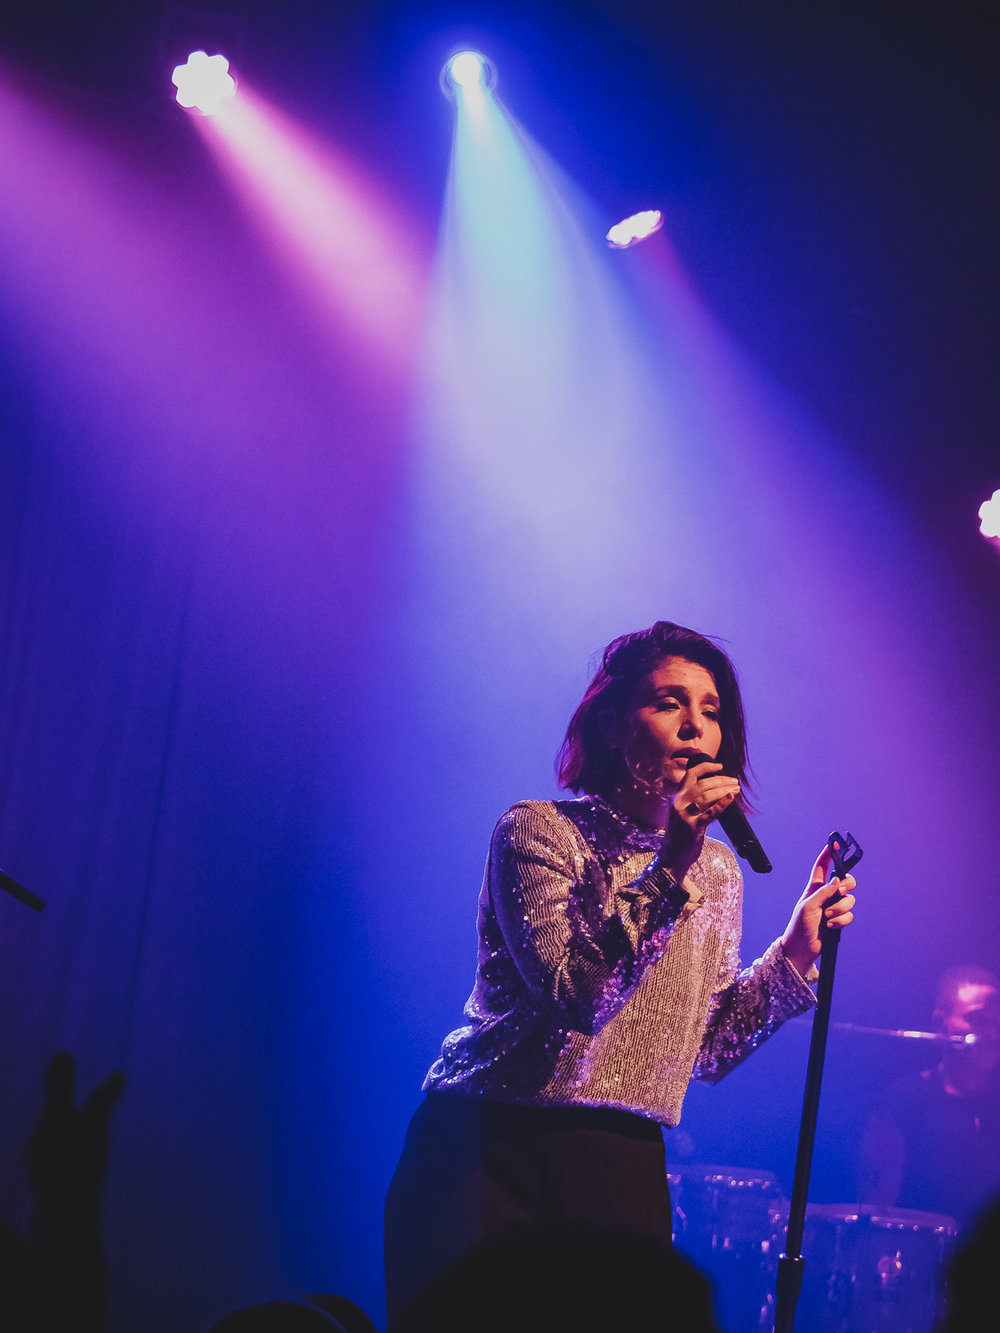 jessie_ware_110117_the_independent-11.jpg